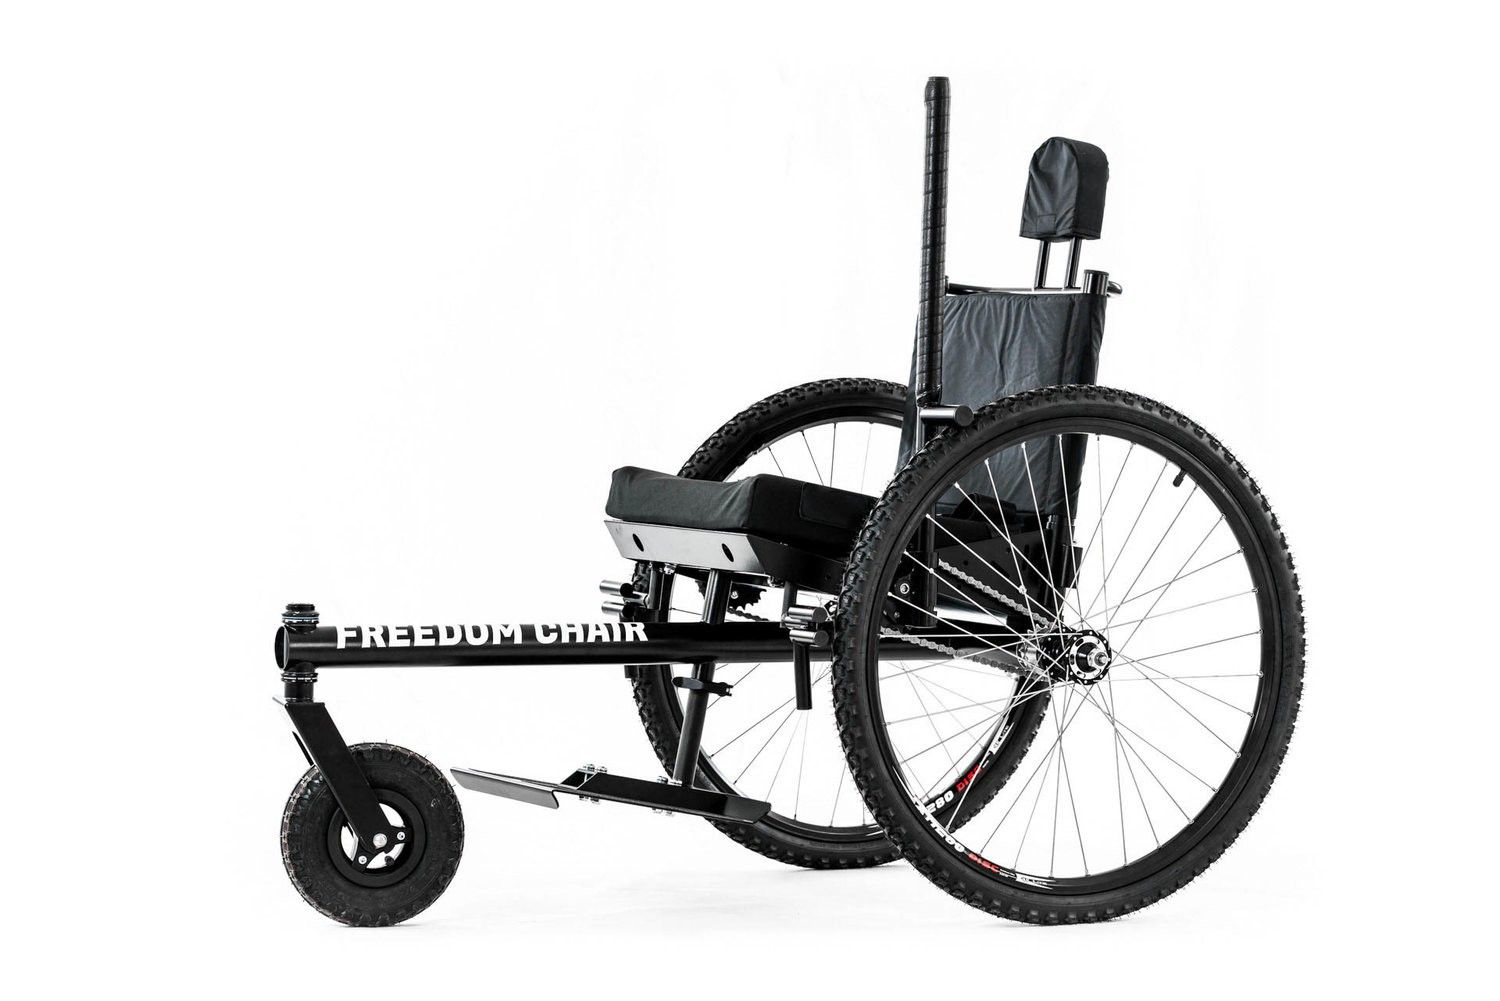 Grit Leveraged Freedom Chair Brings Mobility To Developing World